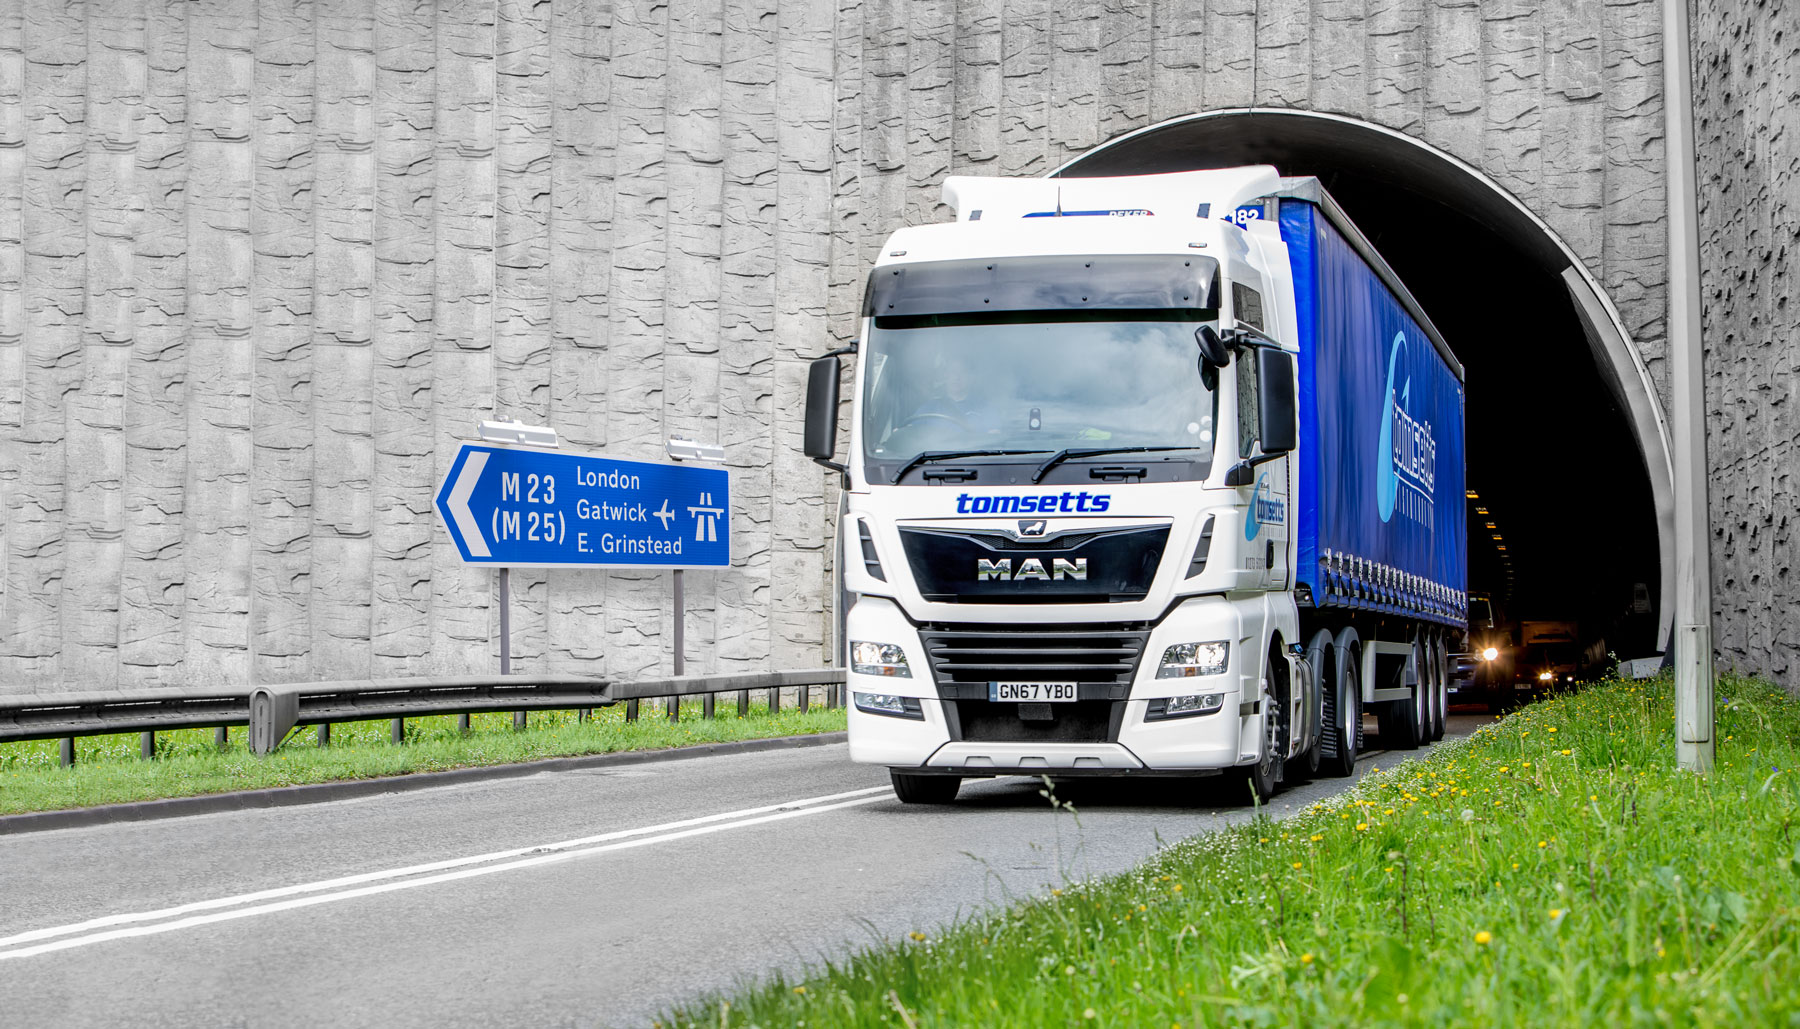 A Tomsetts pallet distribution lorry returning from Europe to Newhaven, UK.